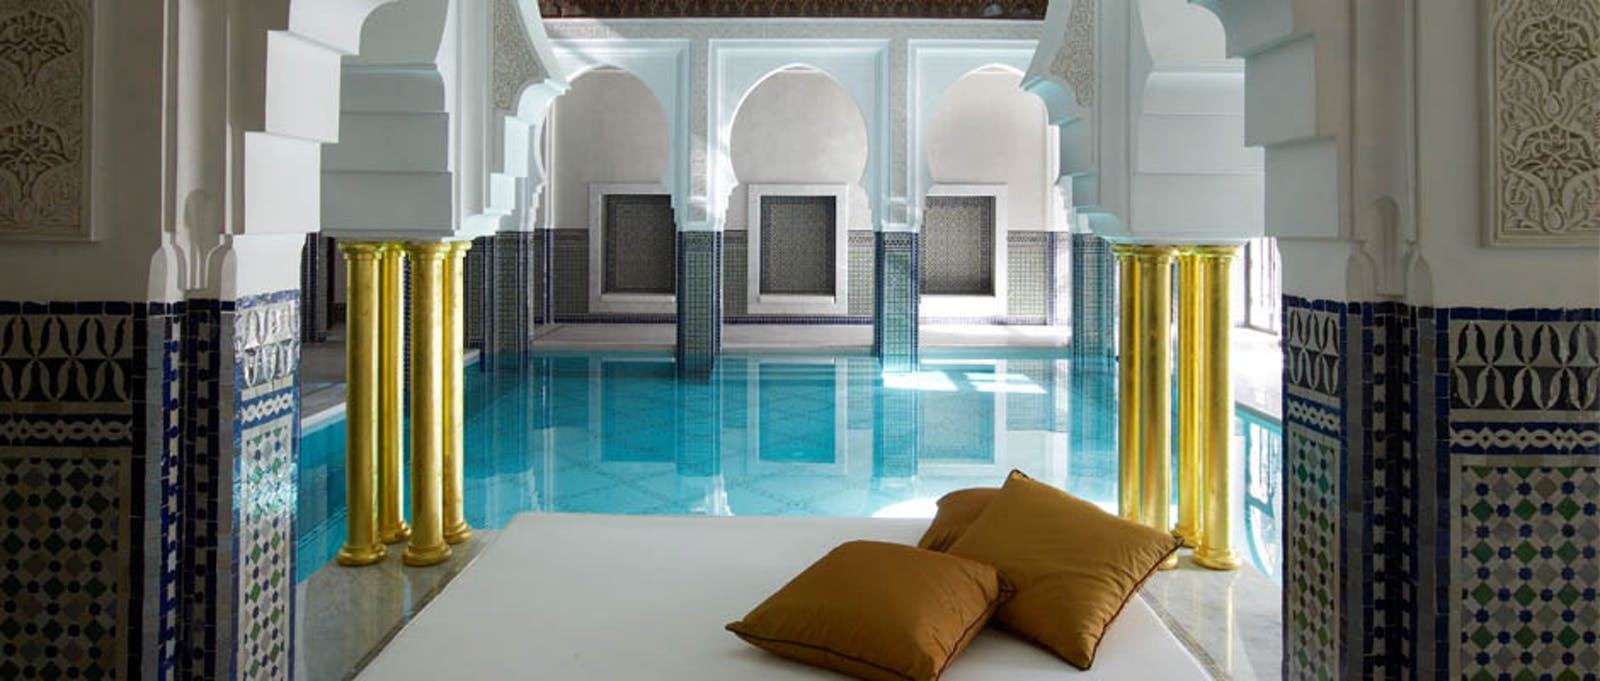 Spa Pool at La Mamounia, Marrakech, Morocco